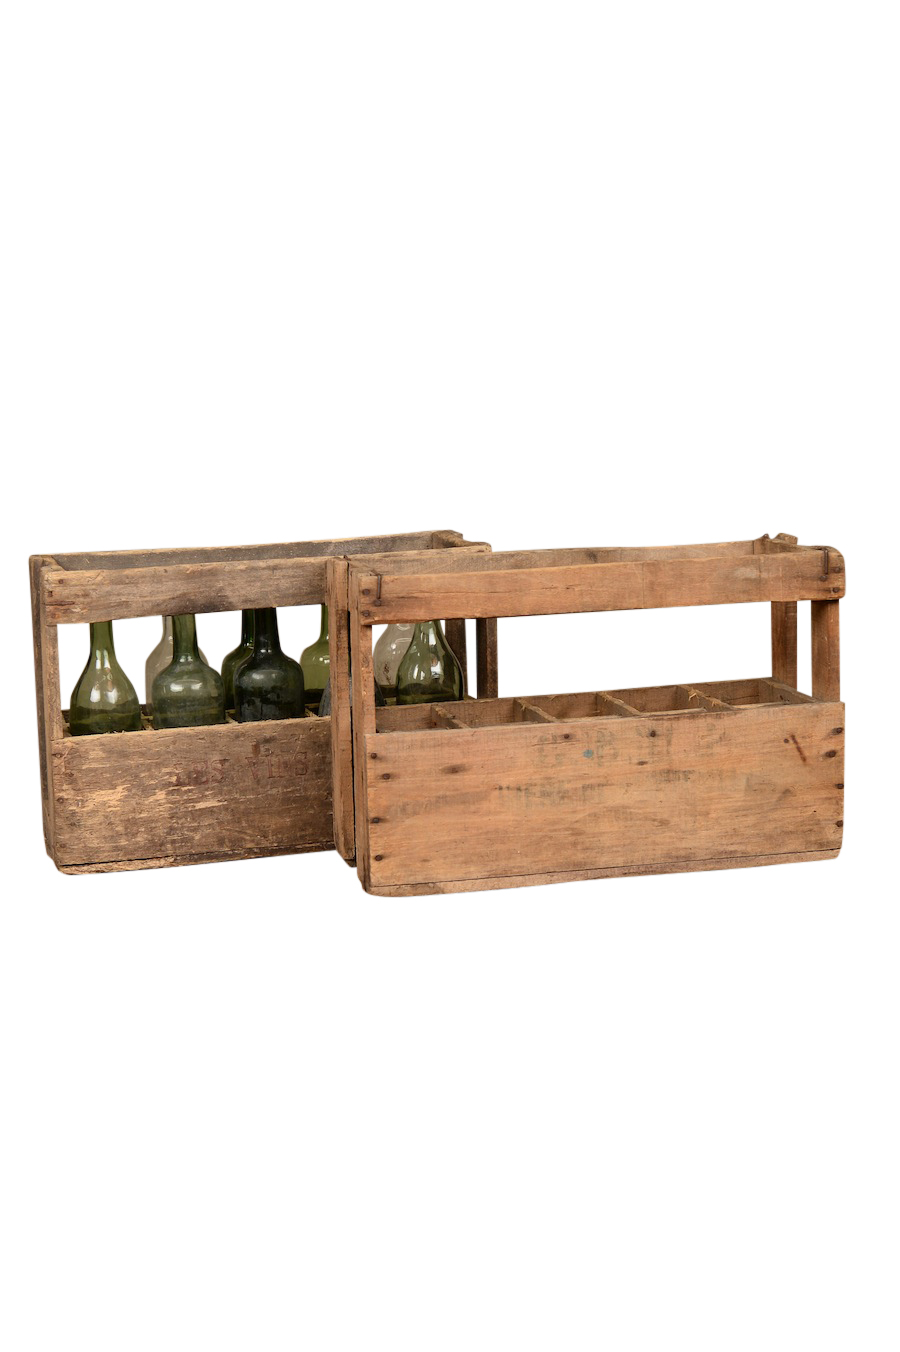 Lidell Wine Crates